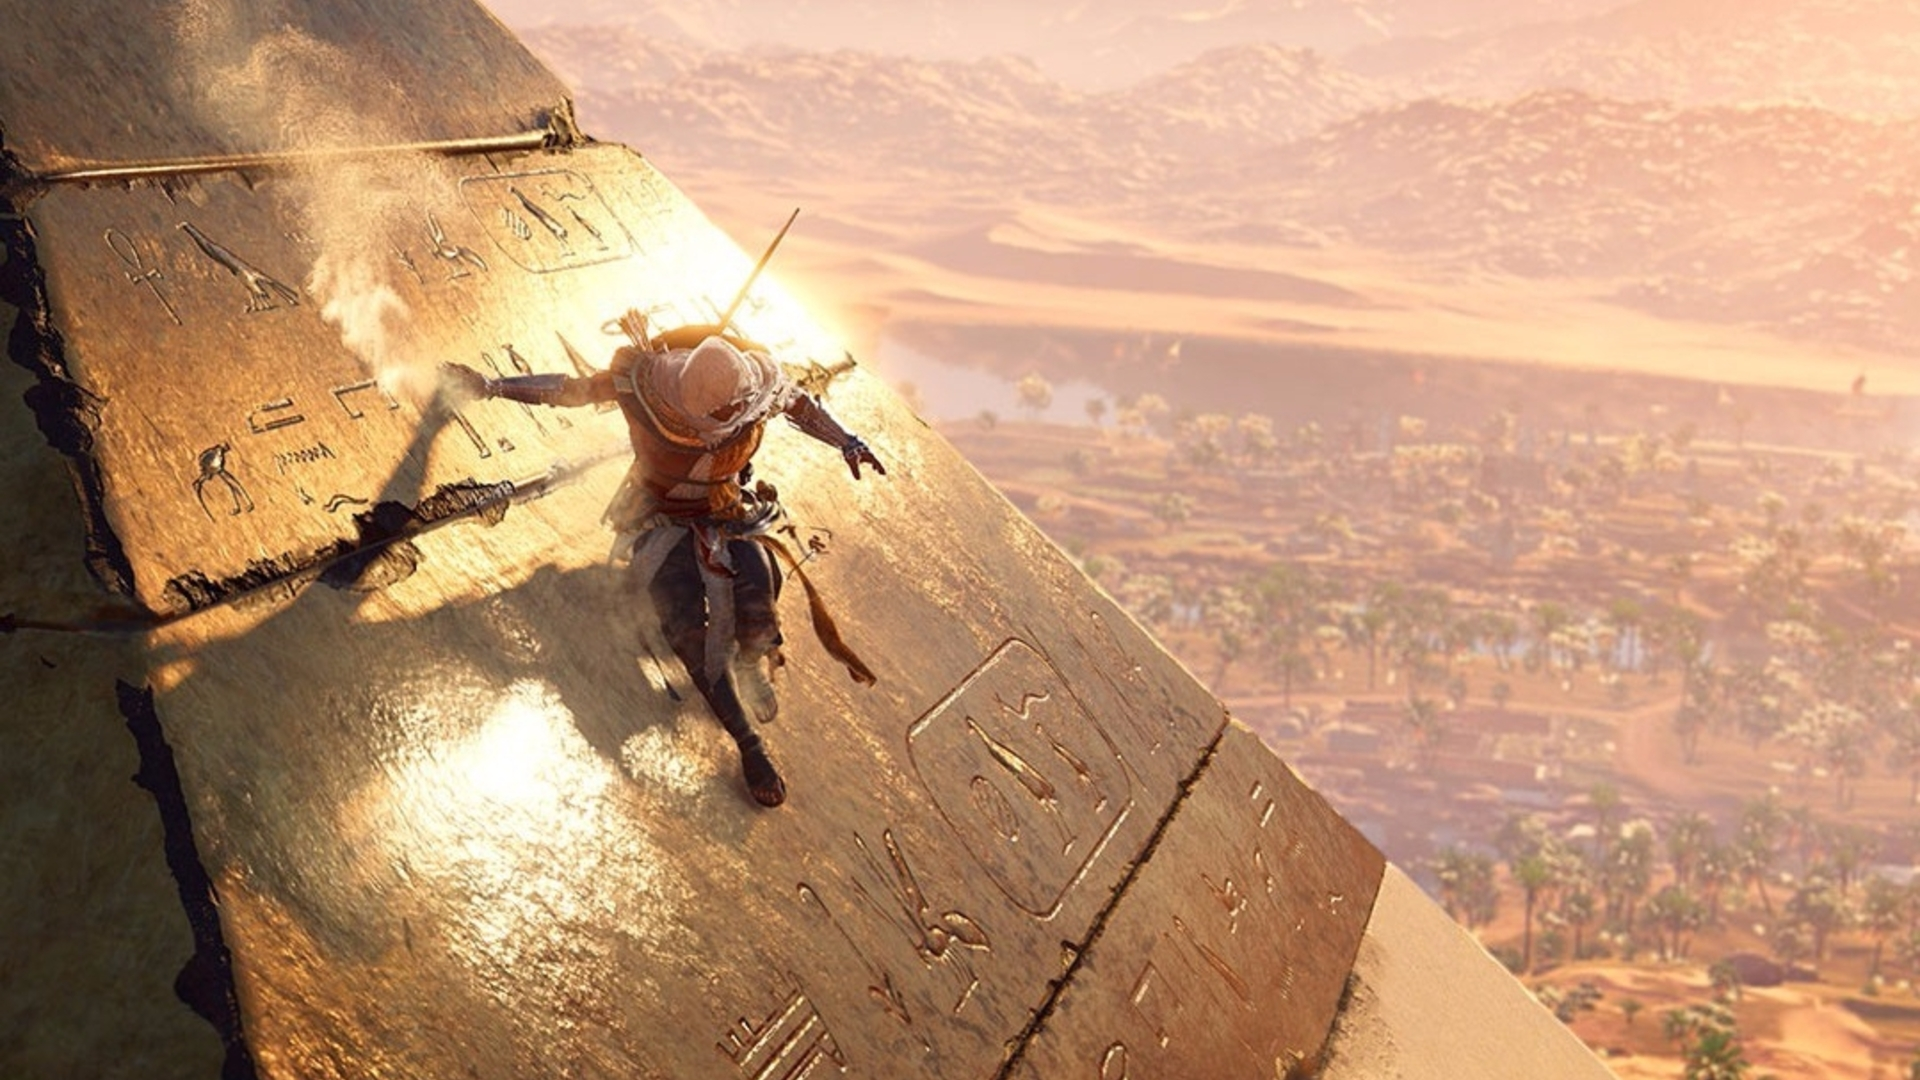 Assassin's Creed Origins guide, walkthrough and tips for AC: Origins'  Ancient Egyptian adventure • Page 1 • Eurogamer.net